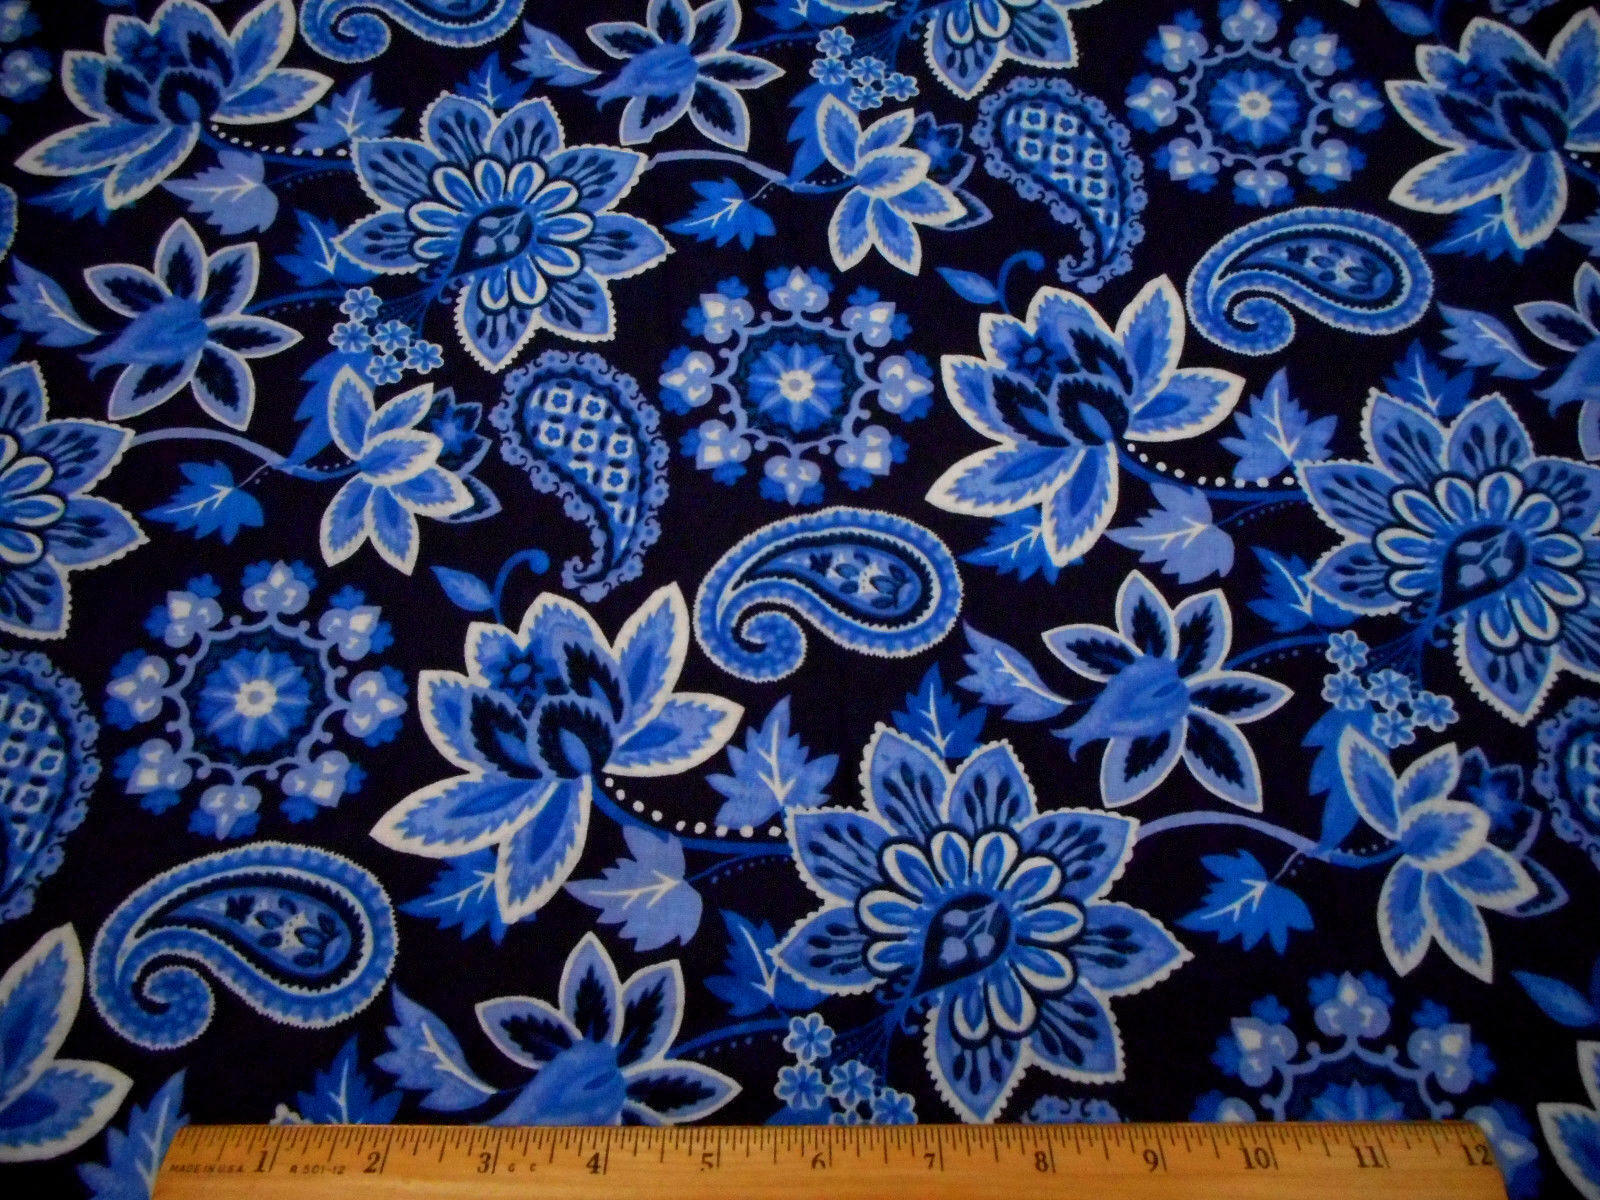 Cotton Fabric By The Yard Blue White Paisley Fl On Navy Quilting 1 Of 2 See More